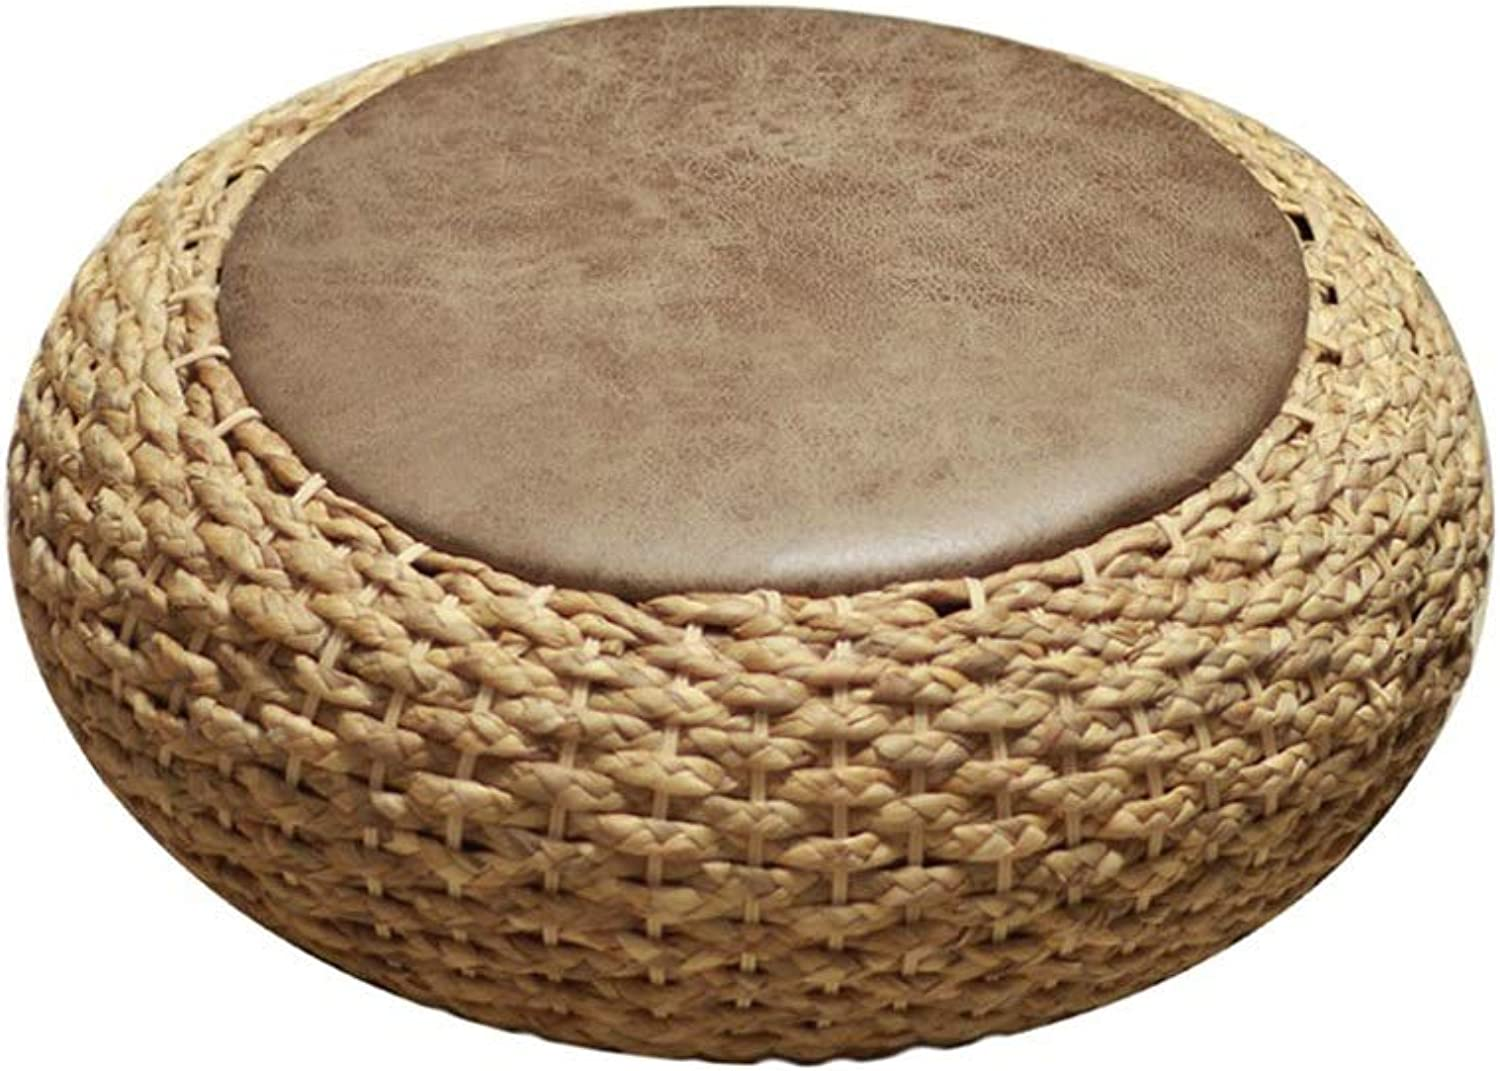 AGLZWY Rattan Stool Round Yoga Mat Multipurpose Thicken Leather Mat Cushion Rattan Weaving Purifying Air Futon Meditation Rest Bay Window Tea Ceremony Decoration (color   A, Size   60X19CM)